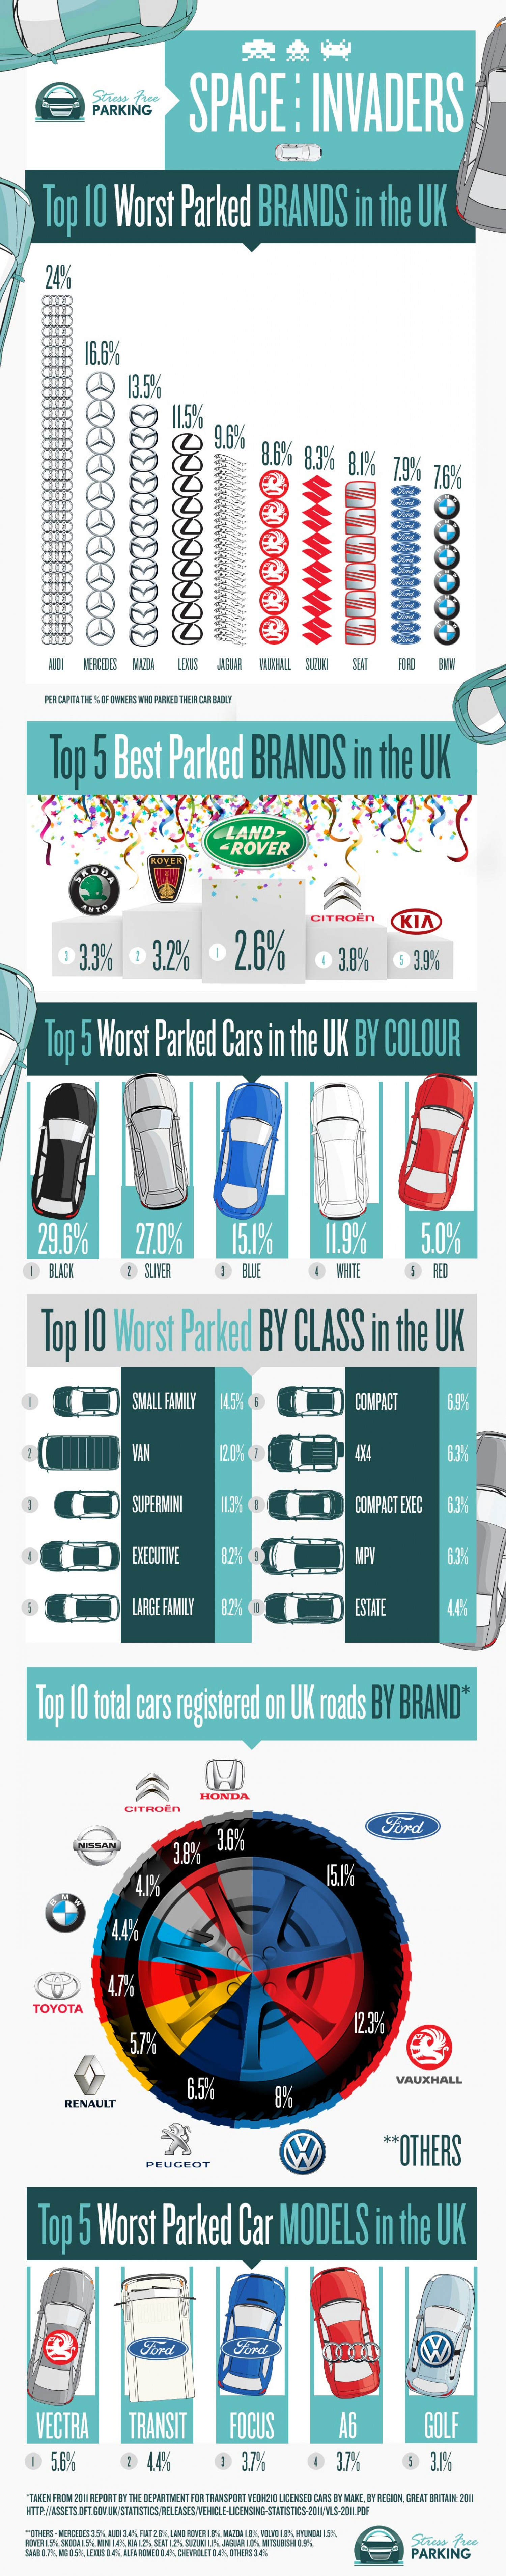 Space Invaders –www.StressFreeAirportParking.com Study Reveals UK's Worst Parkers Infographic